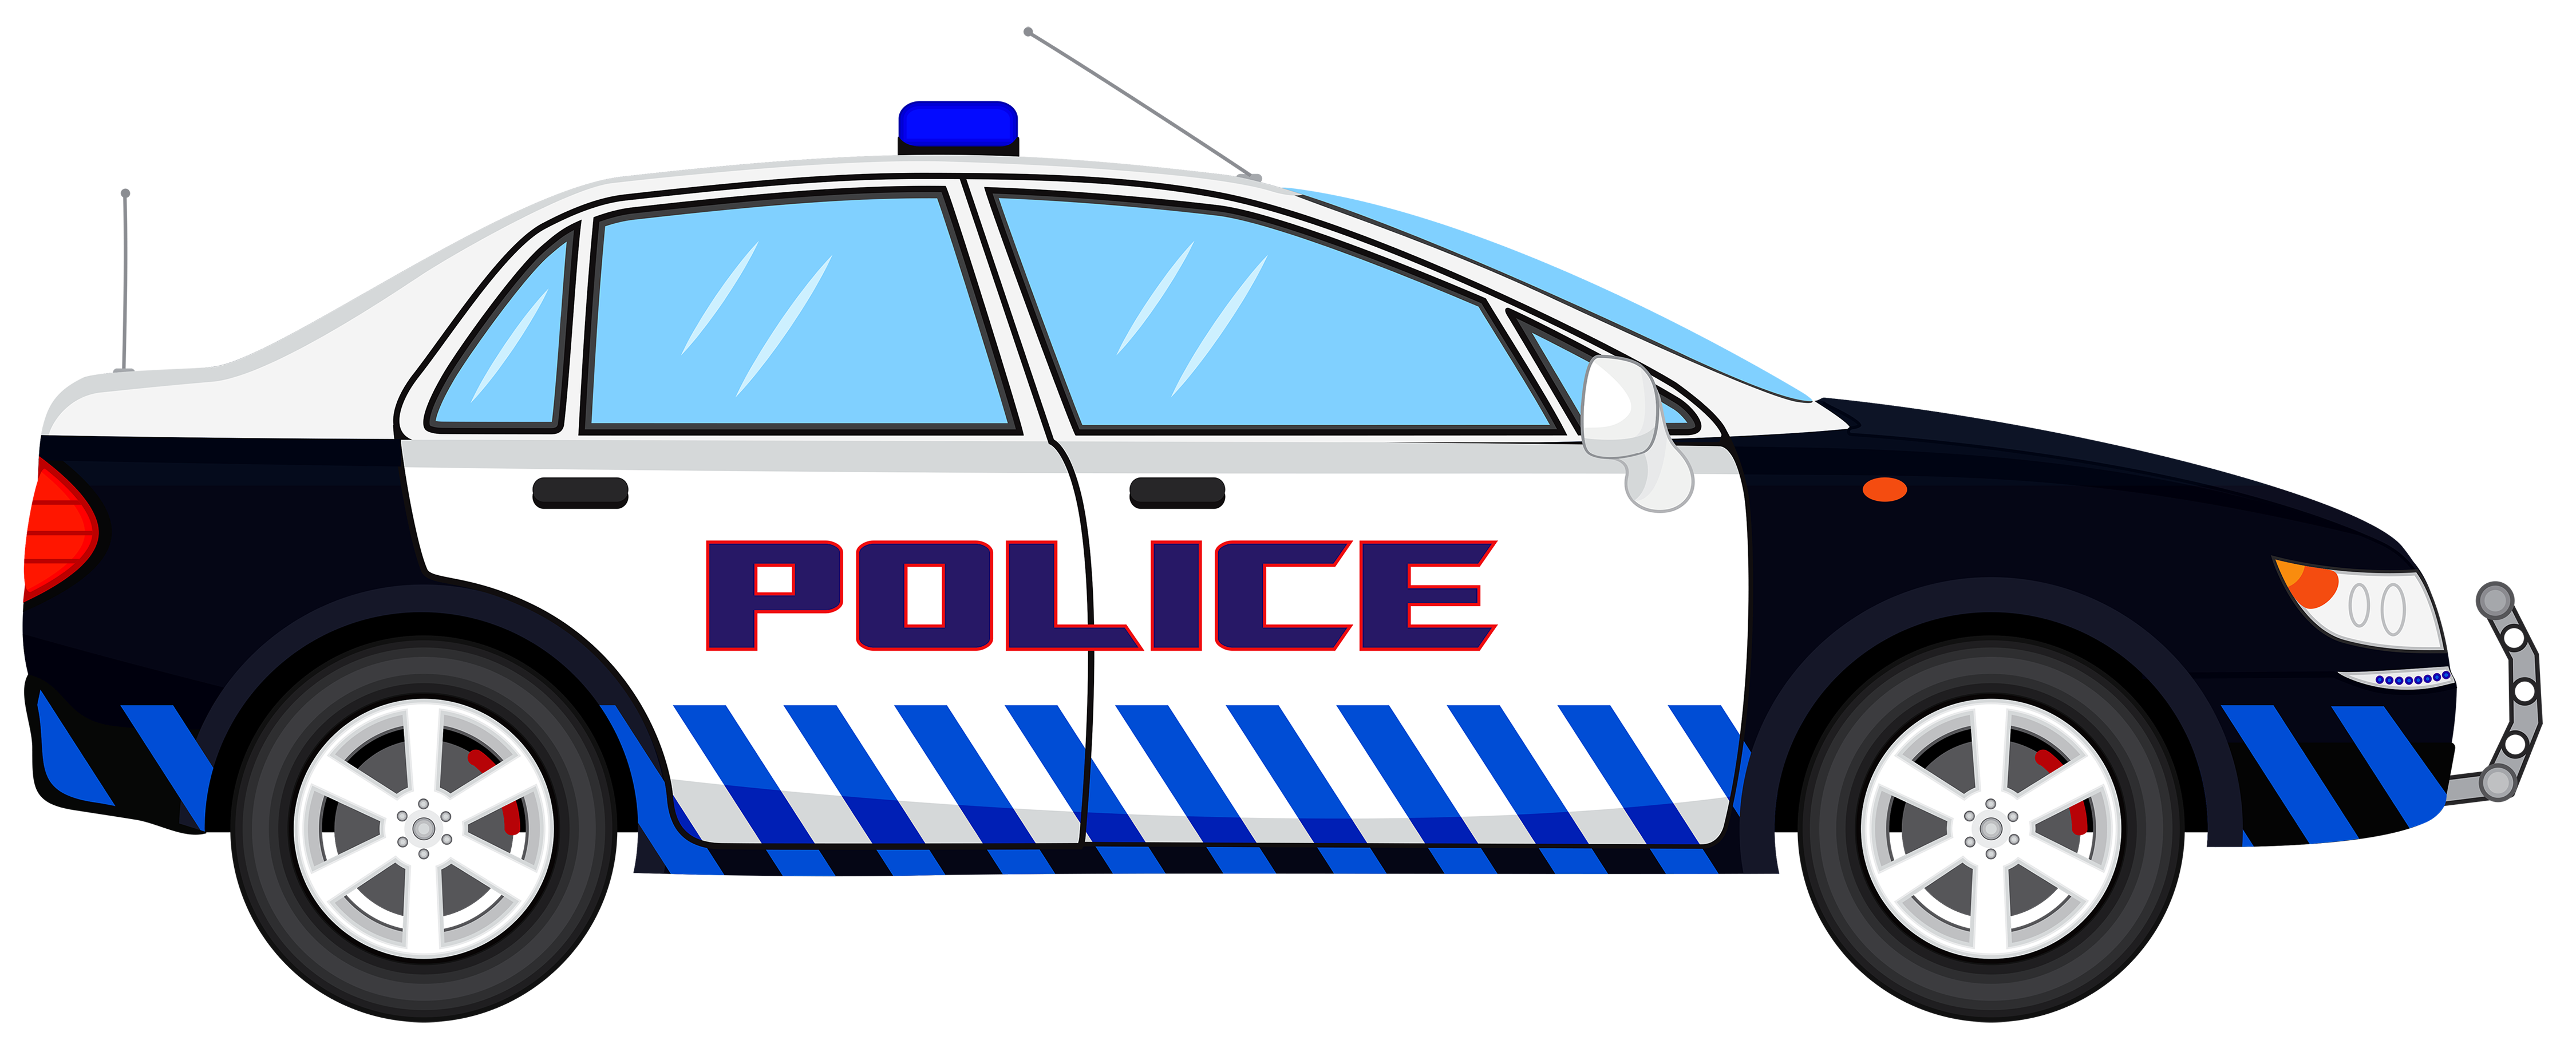 4500x1817 Police Car Clip Art Many Interesting Cliparts